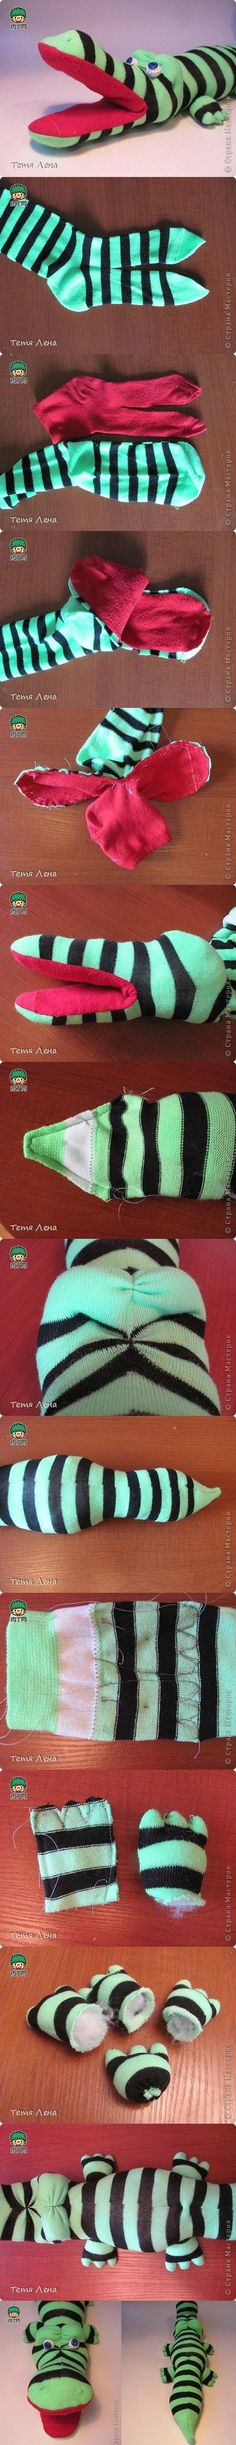 DIY Sock Crocodile Stuffed Animal